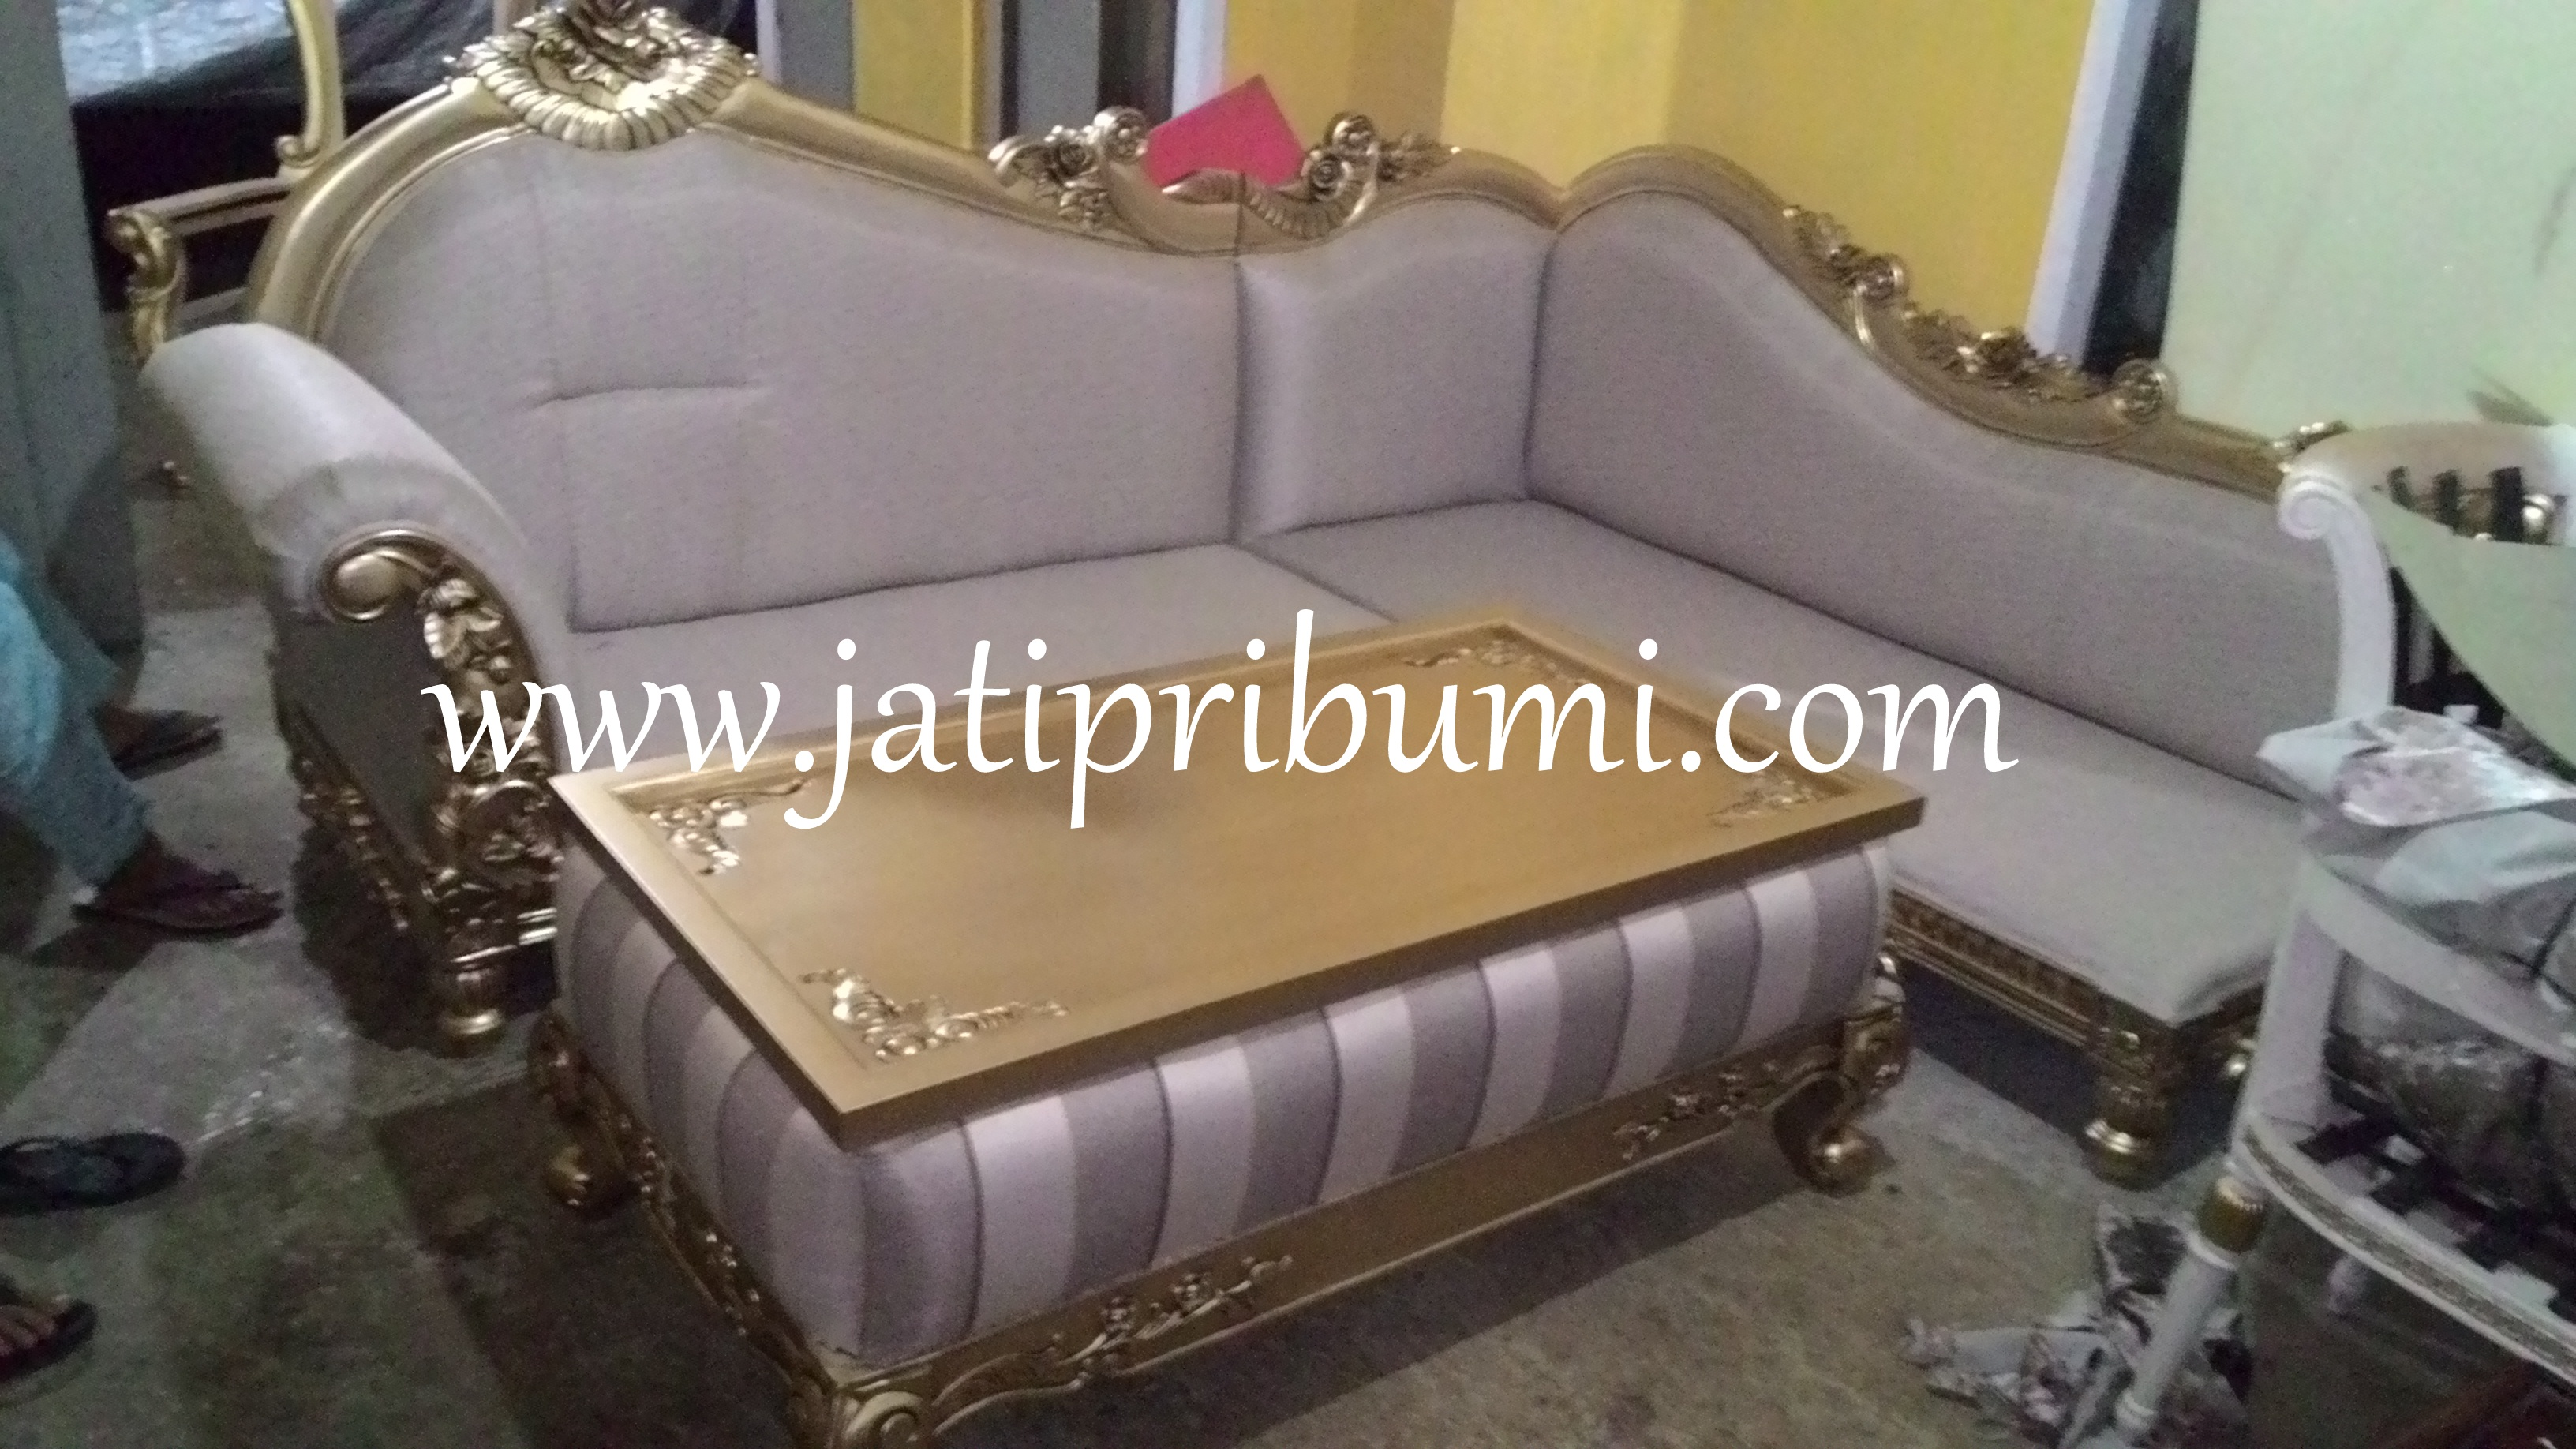 Model Kursi Sofa Terbaru Index Of Wp Content Uploads 2015 08